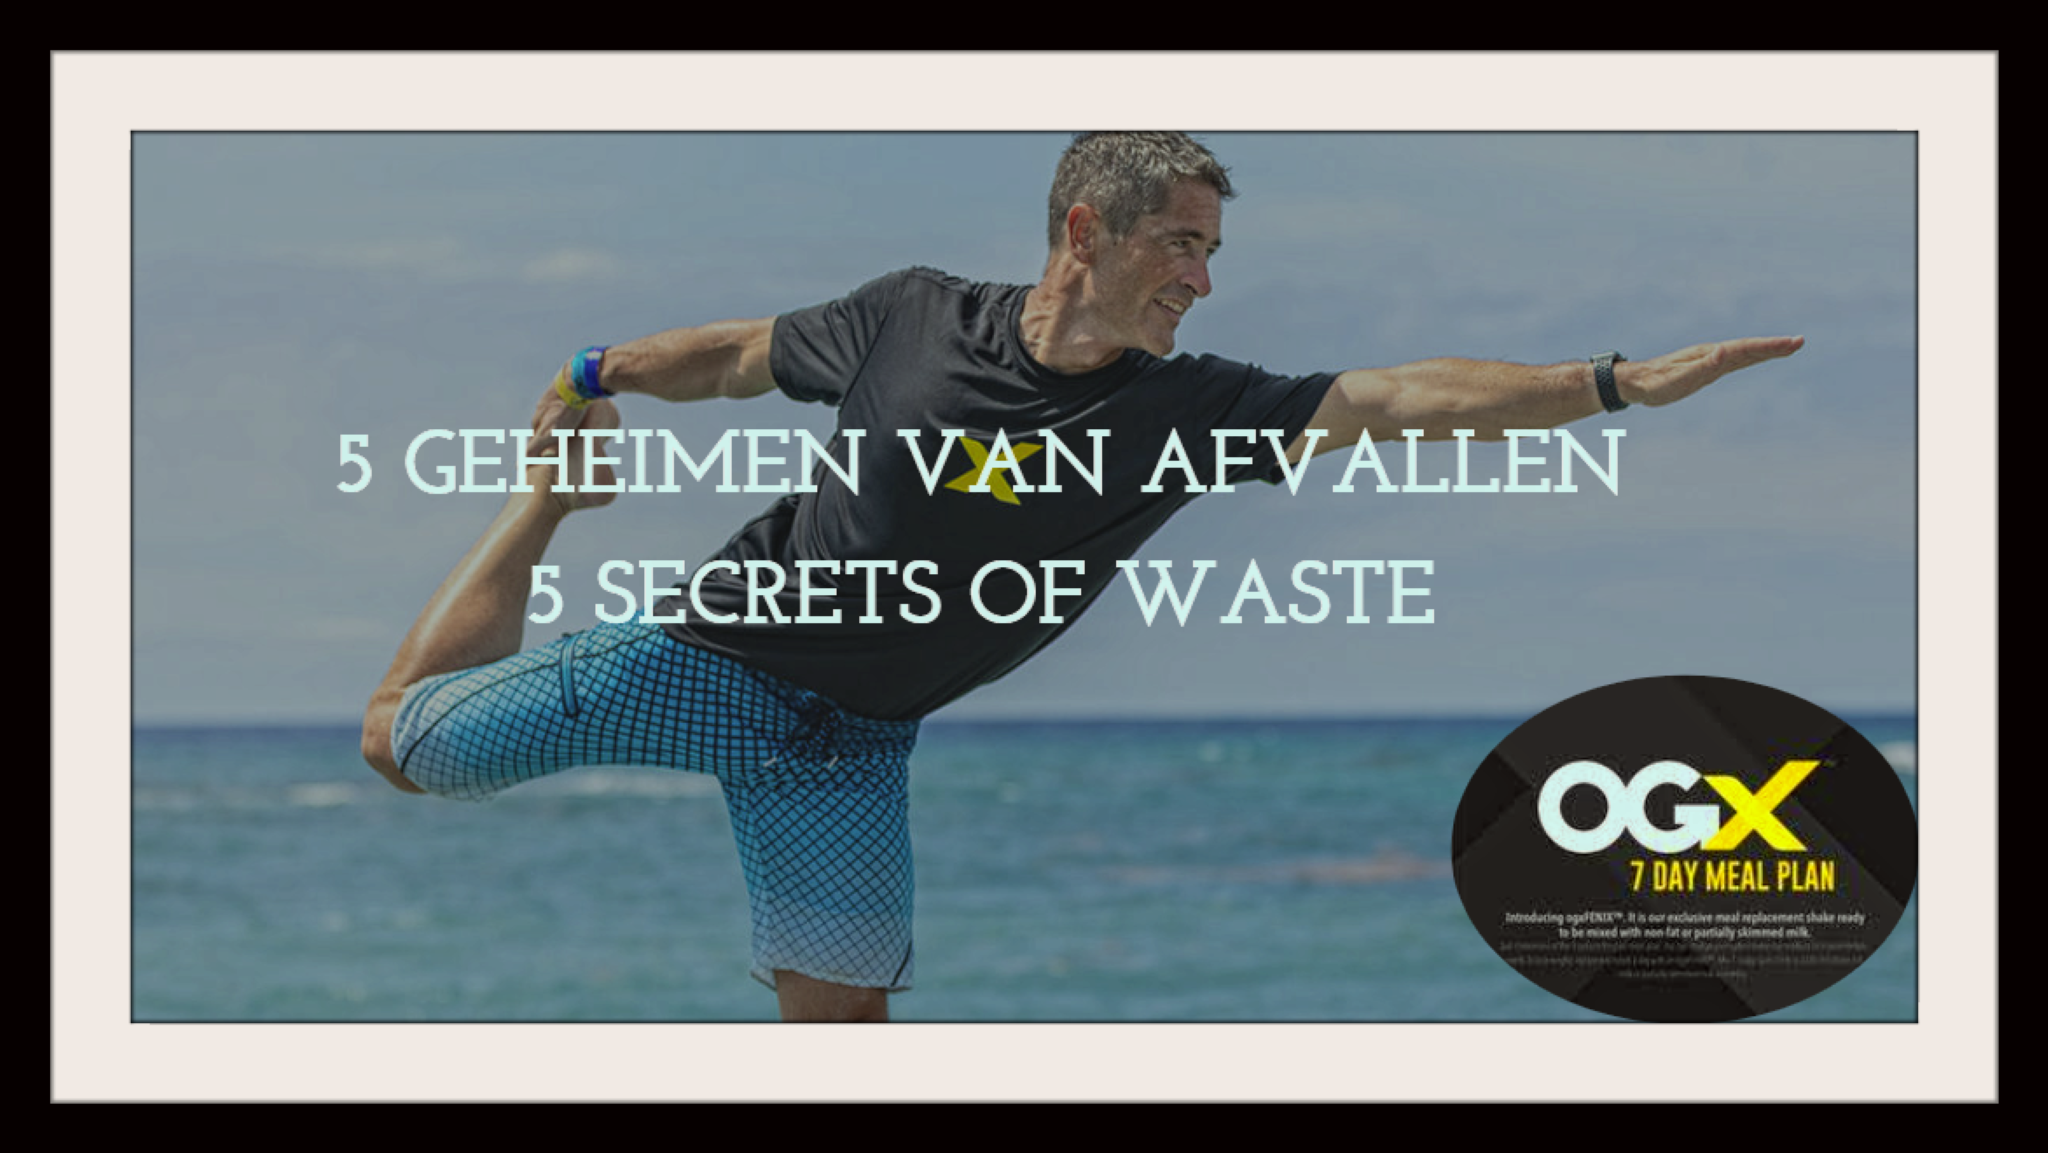 Theo-Herbots 5 geheimen van afvallen | Theo-Herbots 5 secrets of losing weight